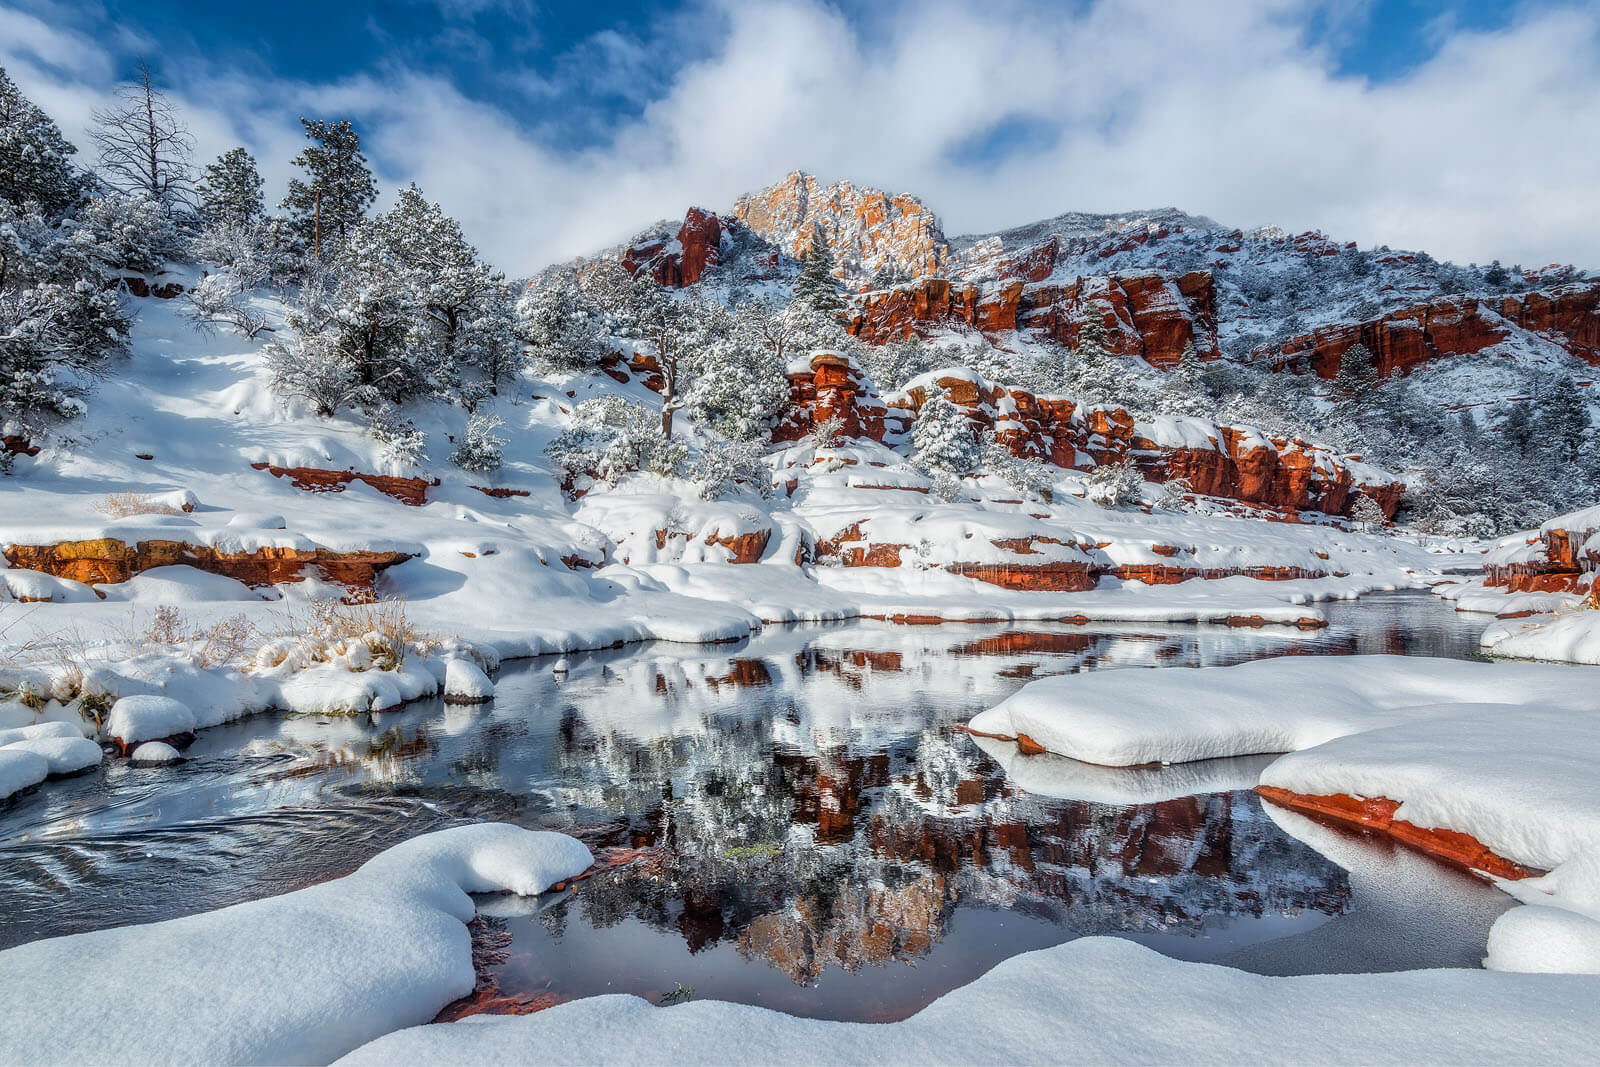 10 Photos That Prove Arizona is Nothing But a Hot, Dry Desert